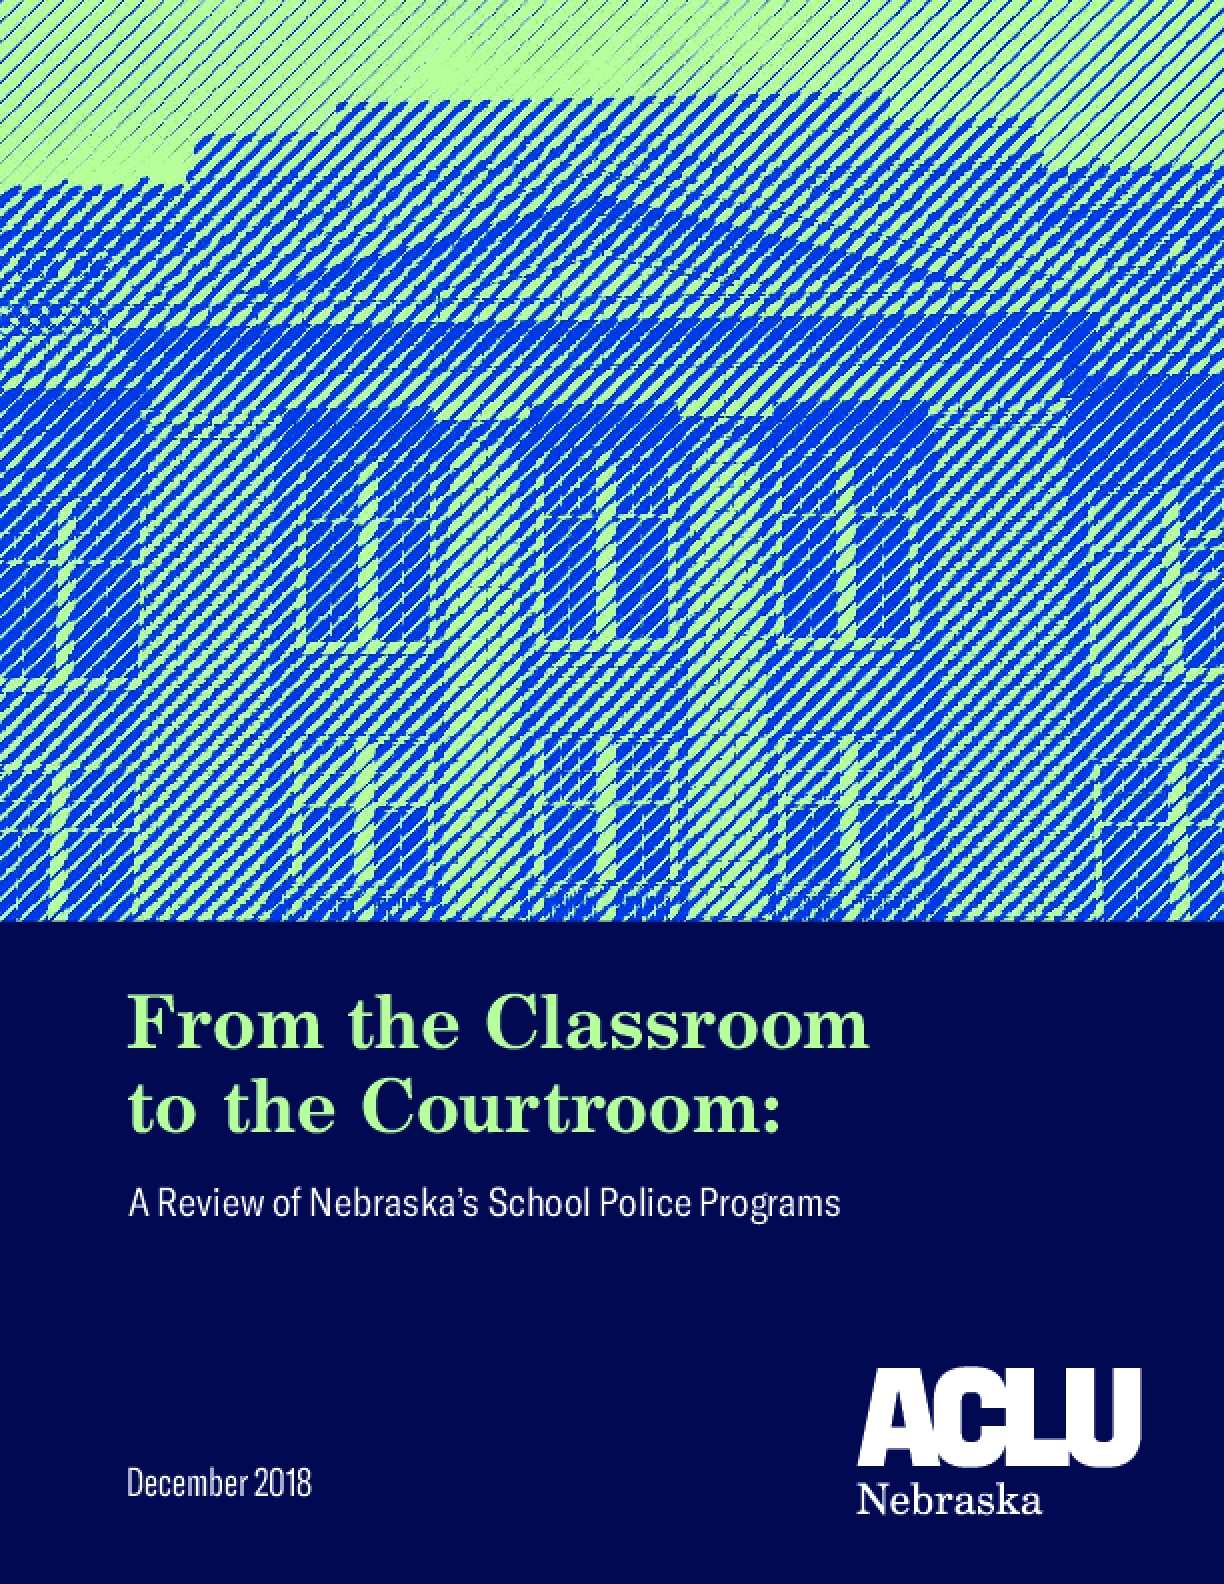 From the Classroom to the Courtroom: A Review of Nebraska's School Police Programs